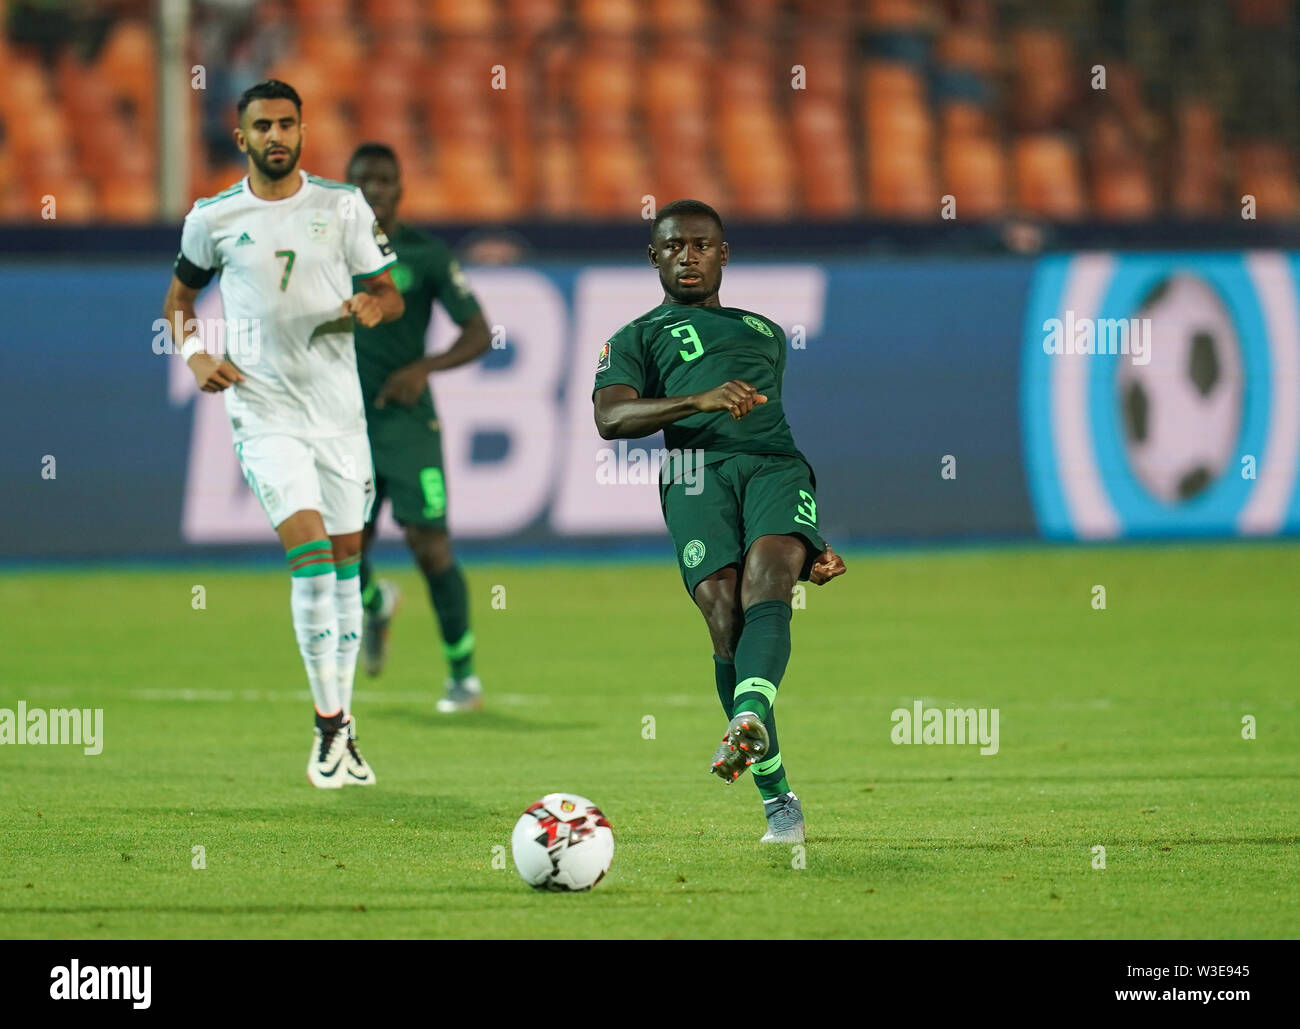 Cairo, Algeria, Egypt. 14th July, 2019. FRANCE OUT July 14, 2019: Jamilu Collins of Nigeria during the 2019 African Cup of Nations match between Algeria and Nigeria at the Cairo International Stadium in Cairo, Egypt. Ulrik Pedersen/CSM/Alamy Live News - Stock Image